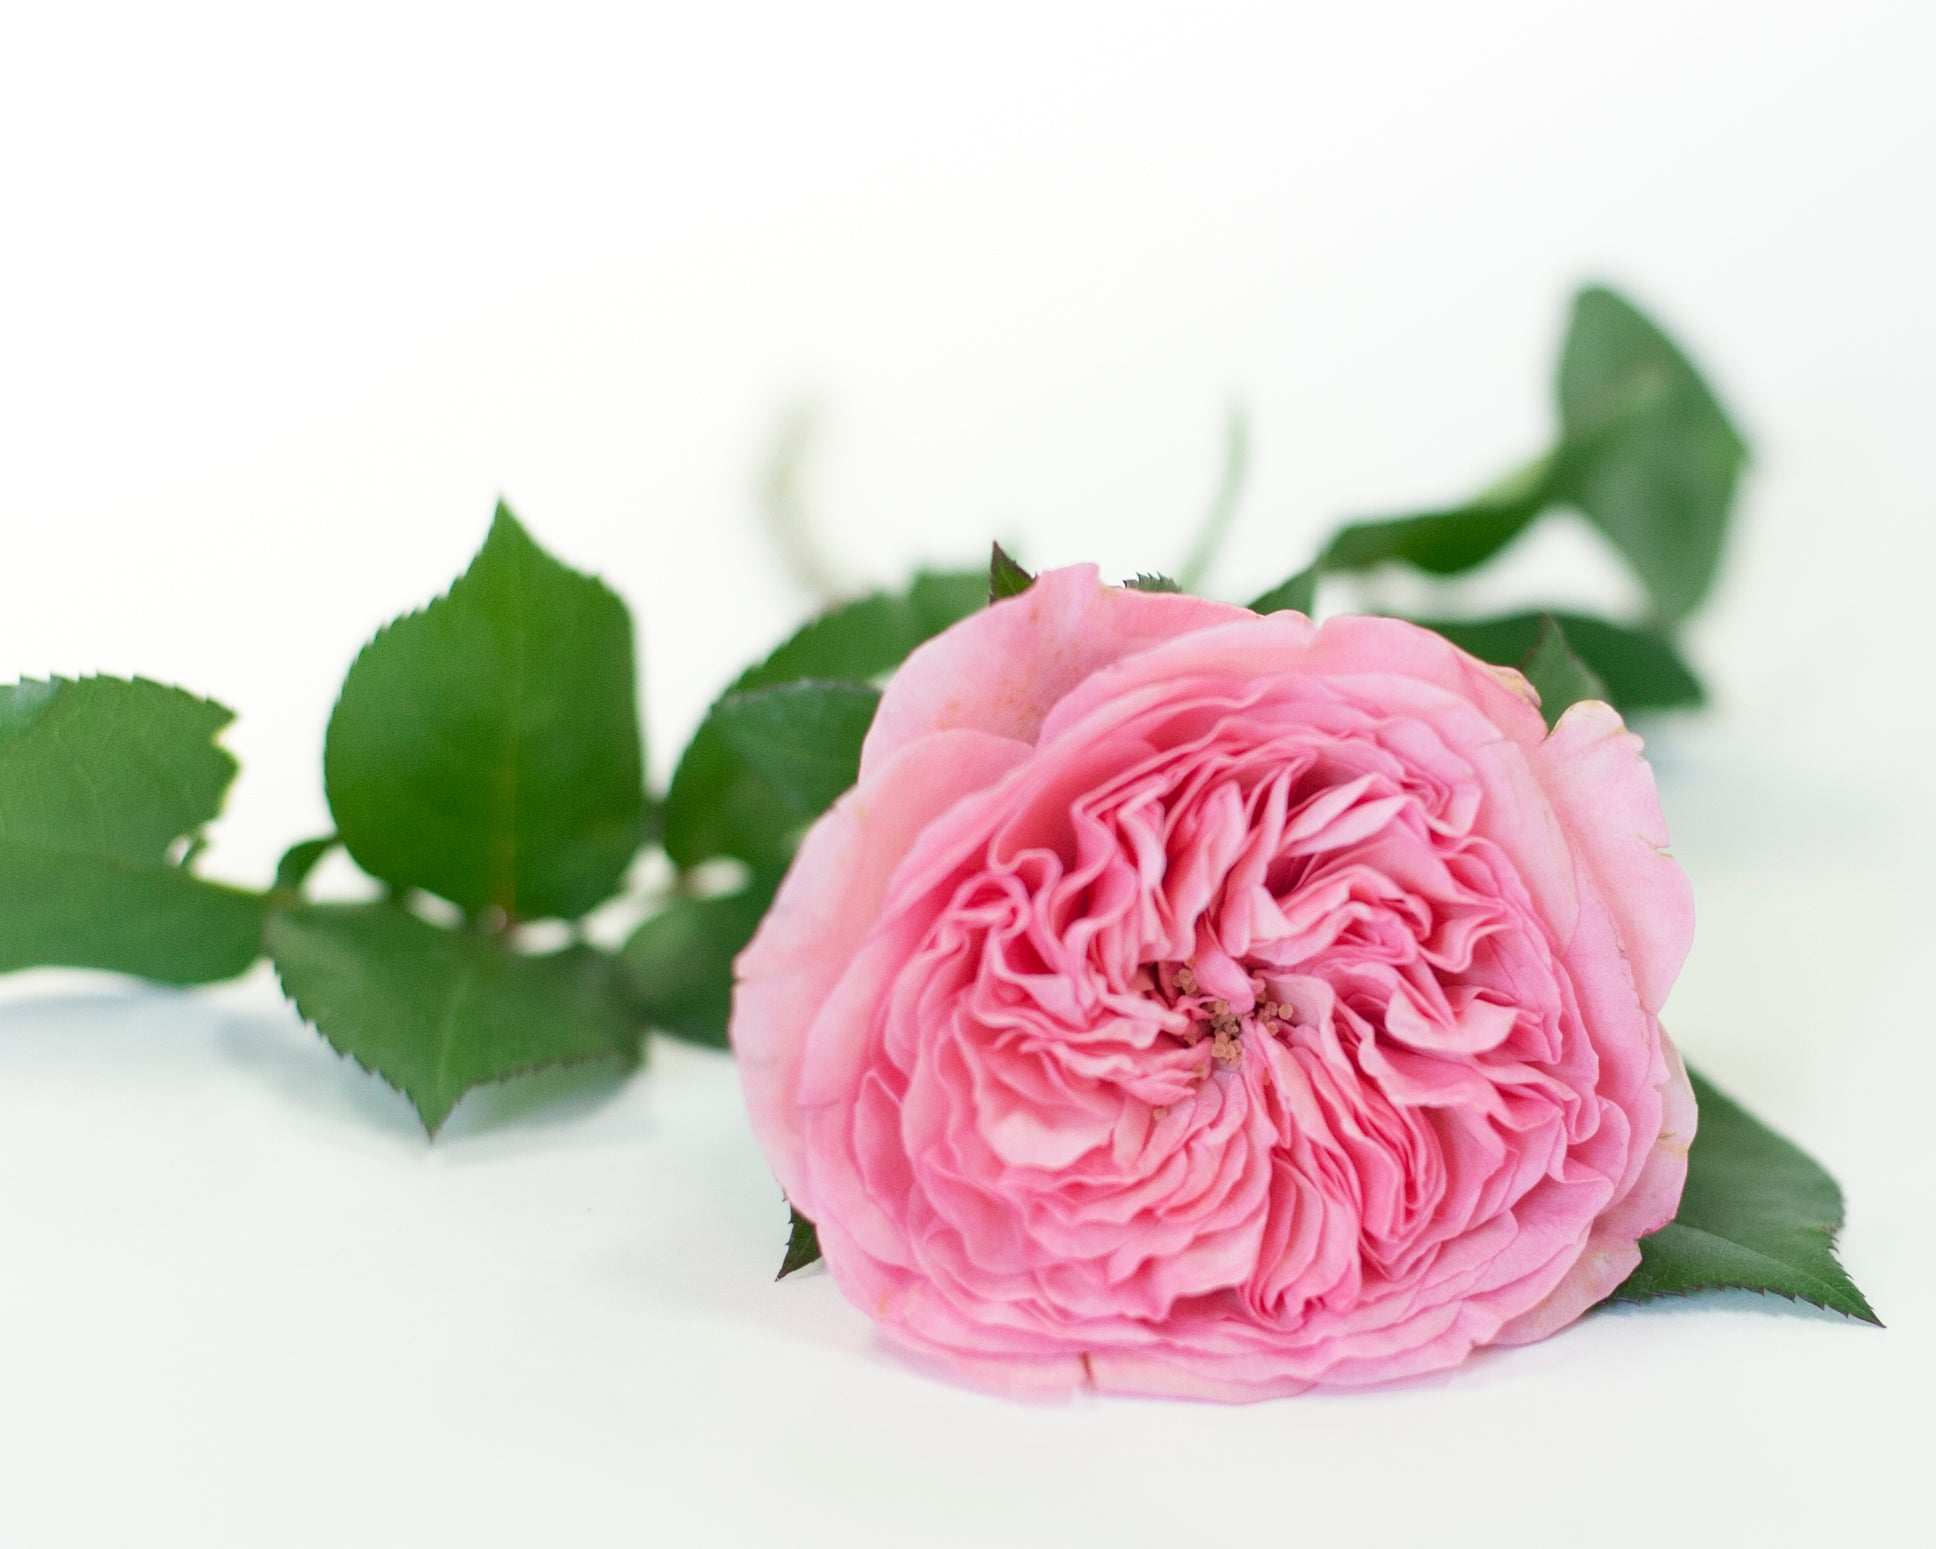 Valentine's Day flowers Toronto Periwinkle rosedale midtown leaside delivery